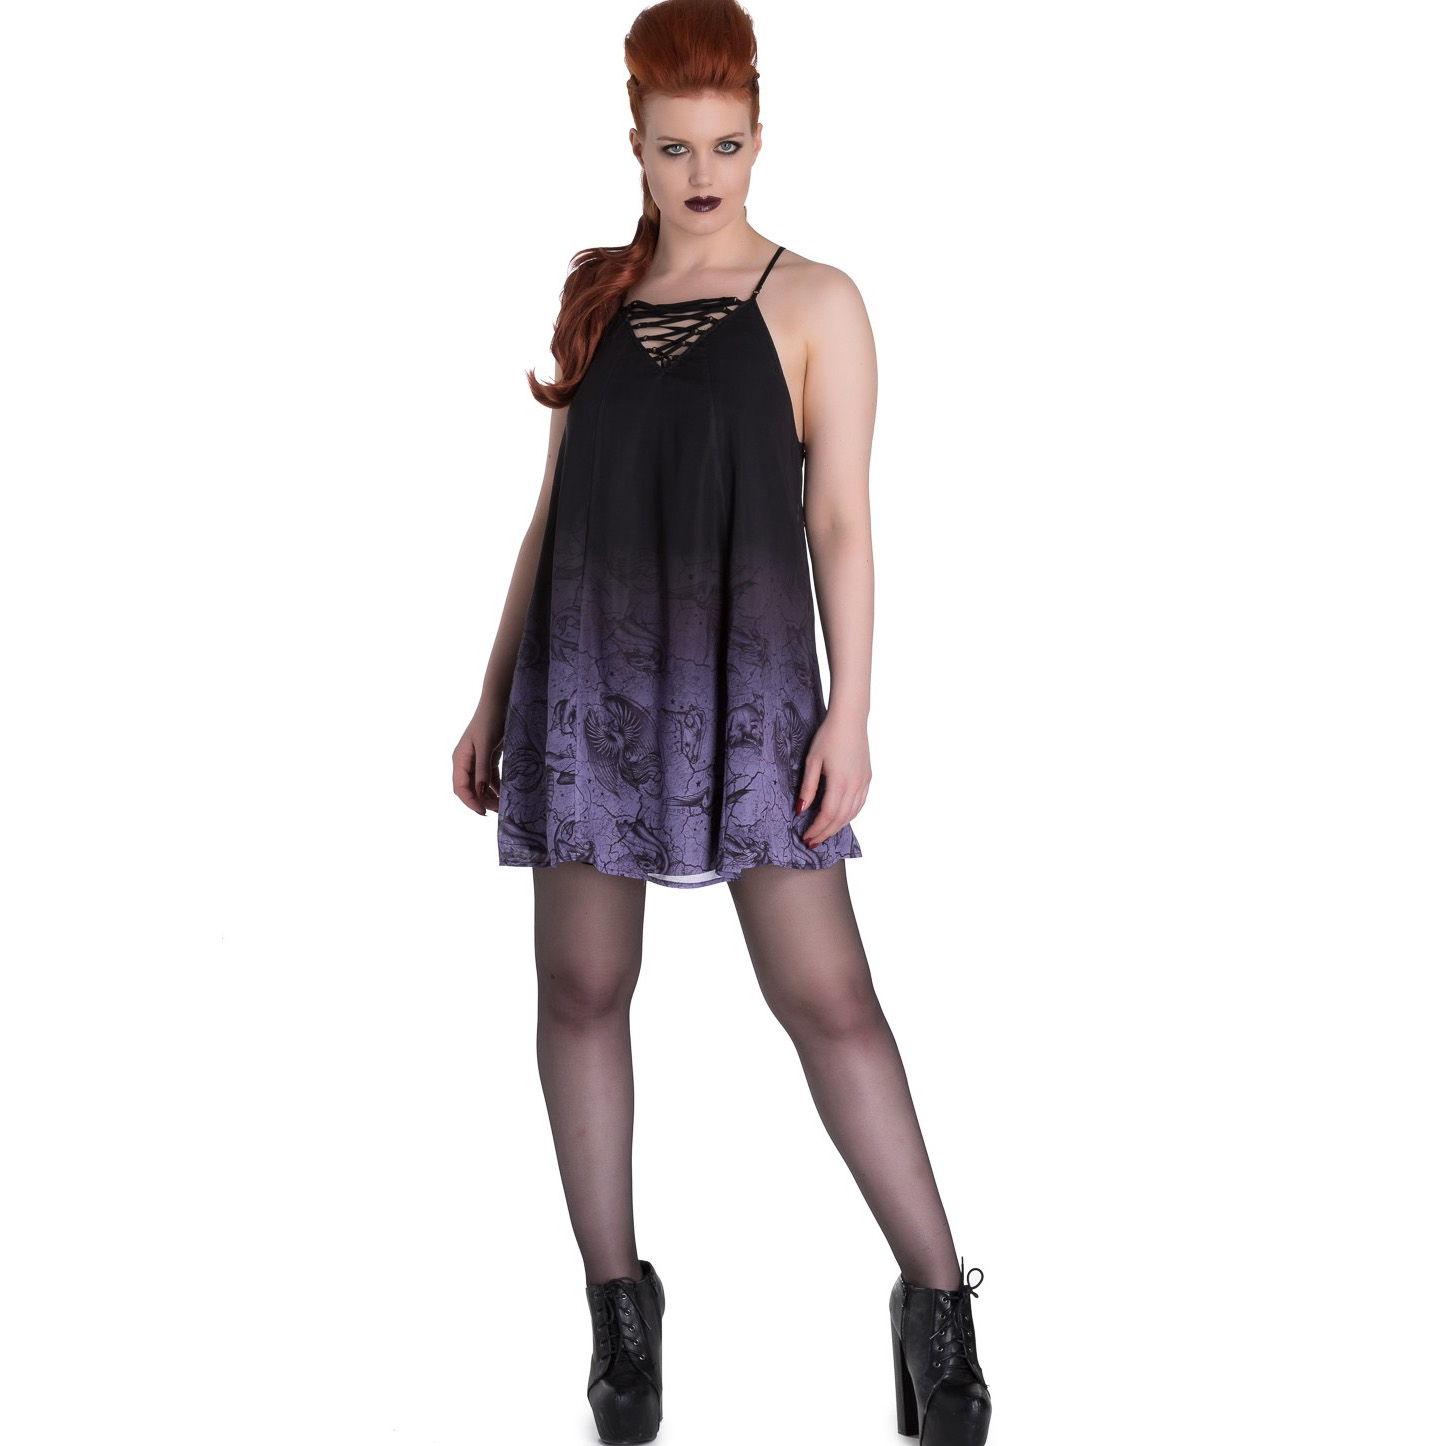 Hell-Bunny-Spin-Doctor-Goth-Lace-Up-Mini-Dress-EVADINE-Purple-Black-All-Sizes thumbnail 3